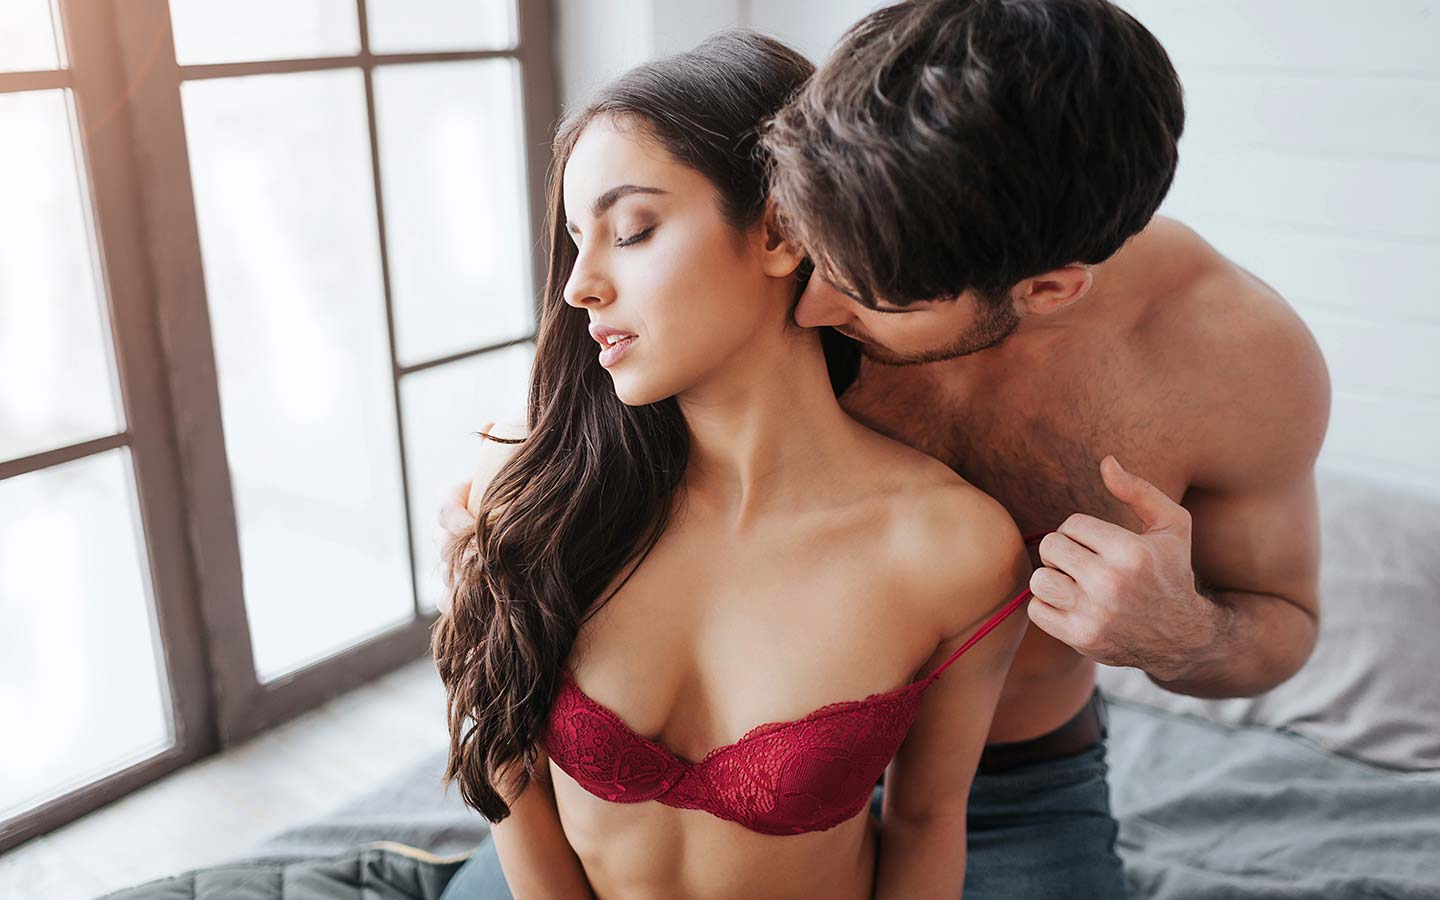 The body parts that you should never overlook during foreplay